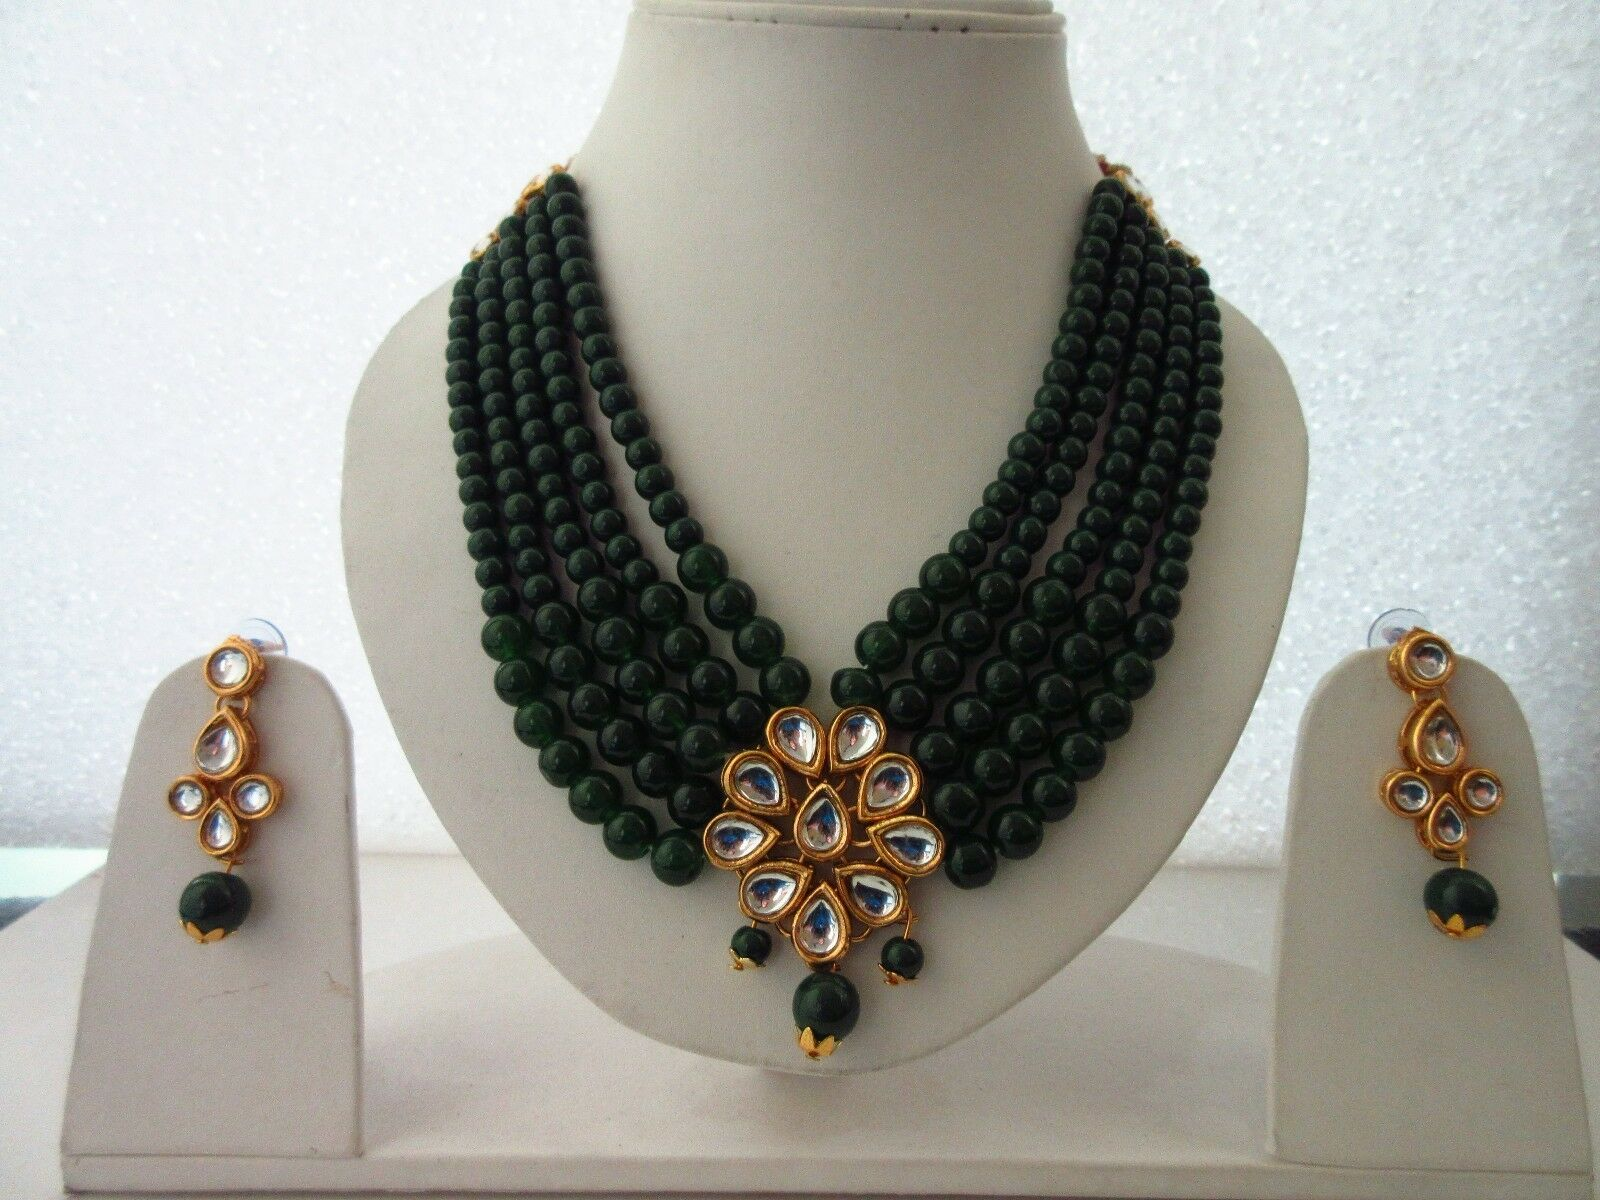 Indian Traditional Bridal Green Pearls Bollywood Wedding Fashion Jewelry Set